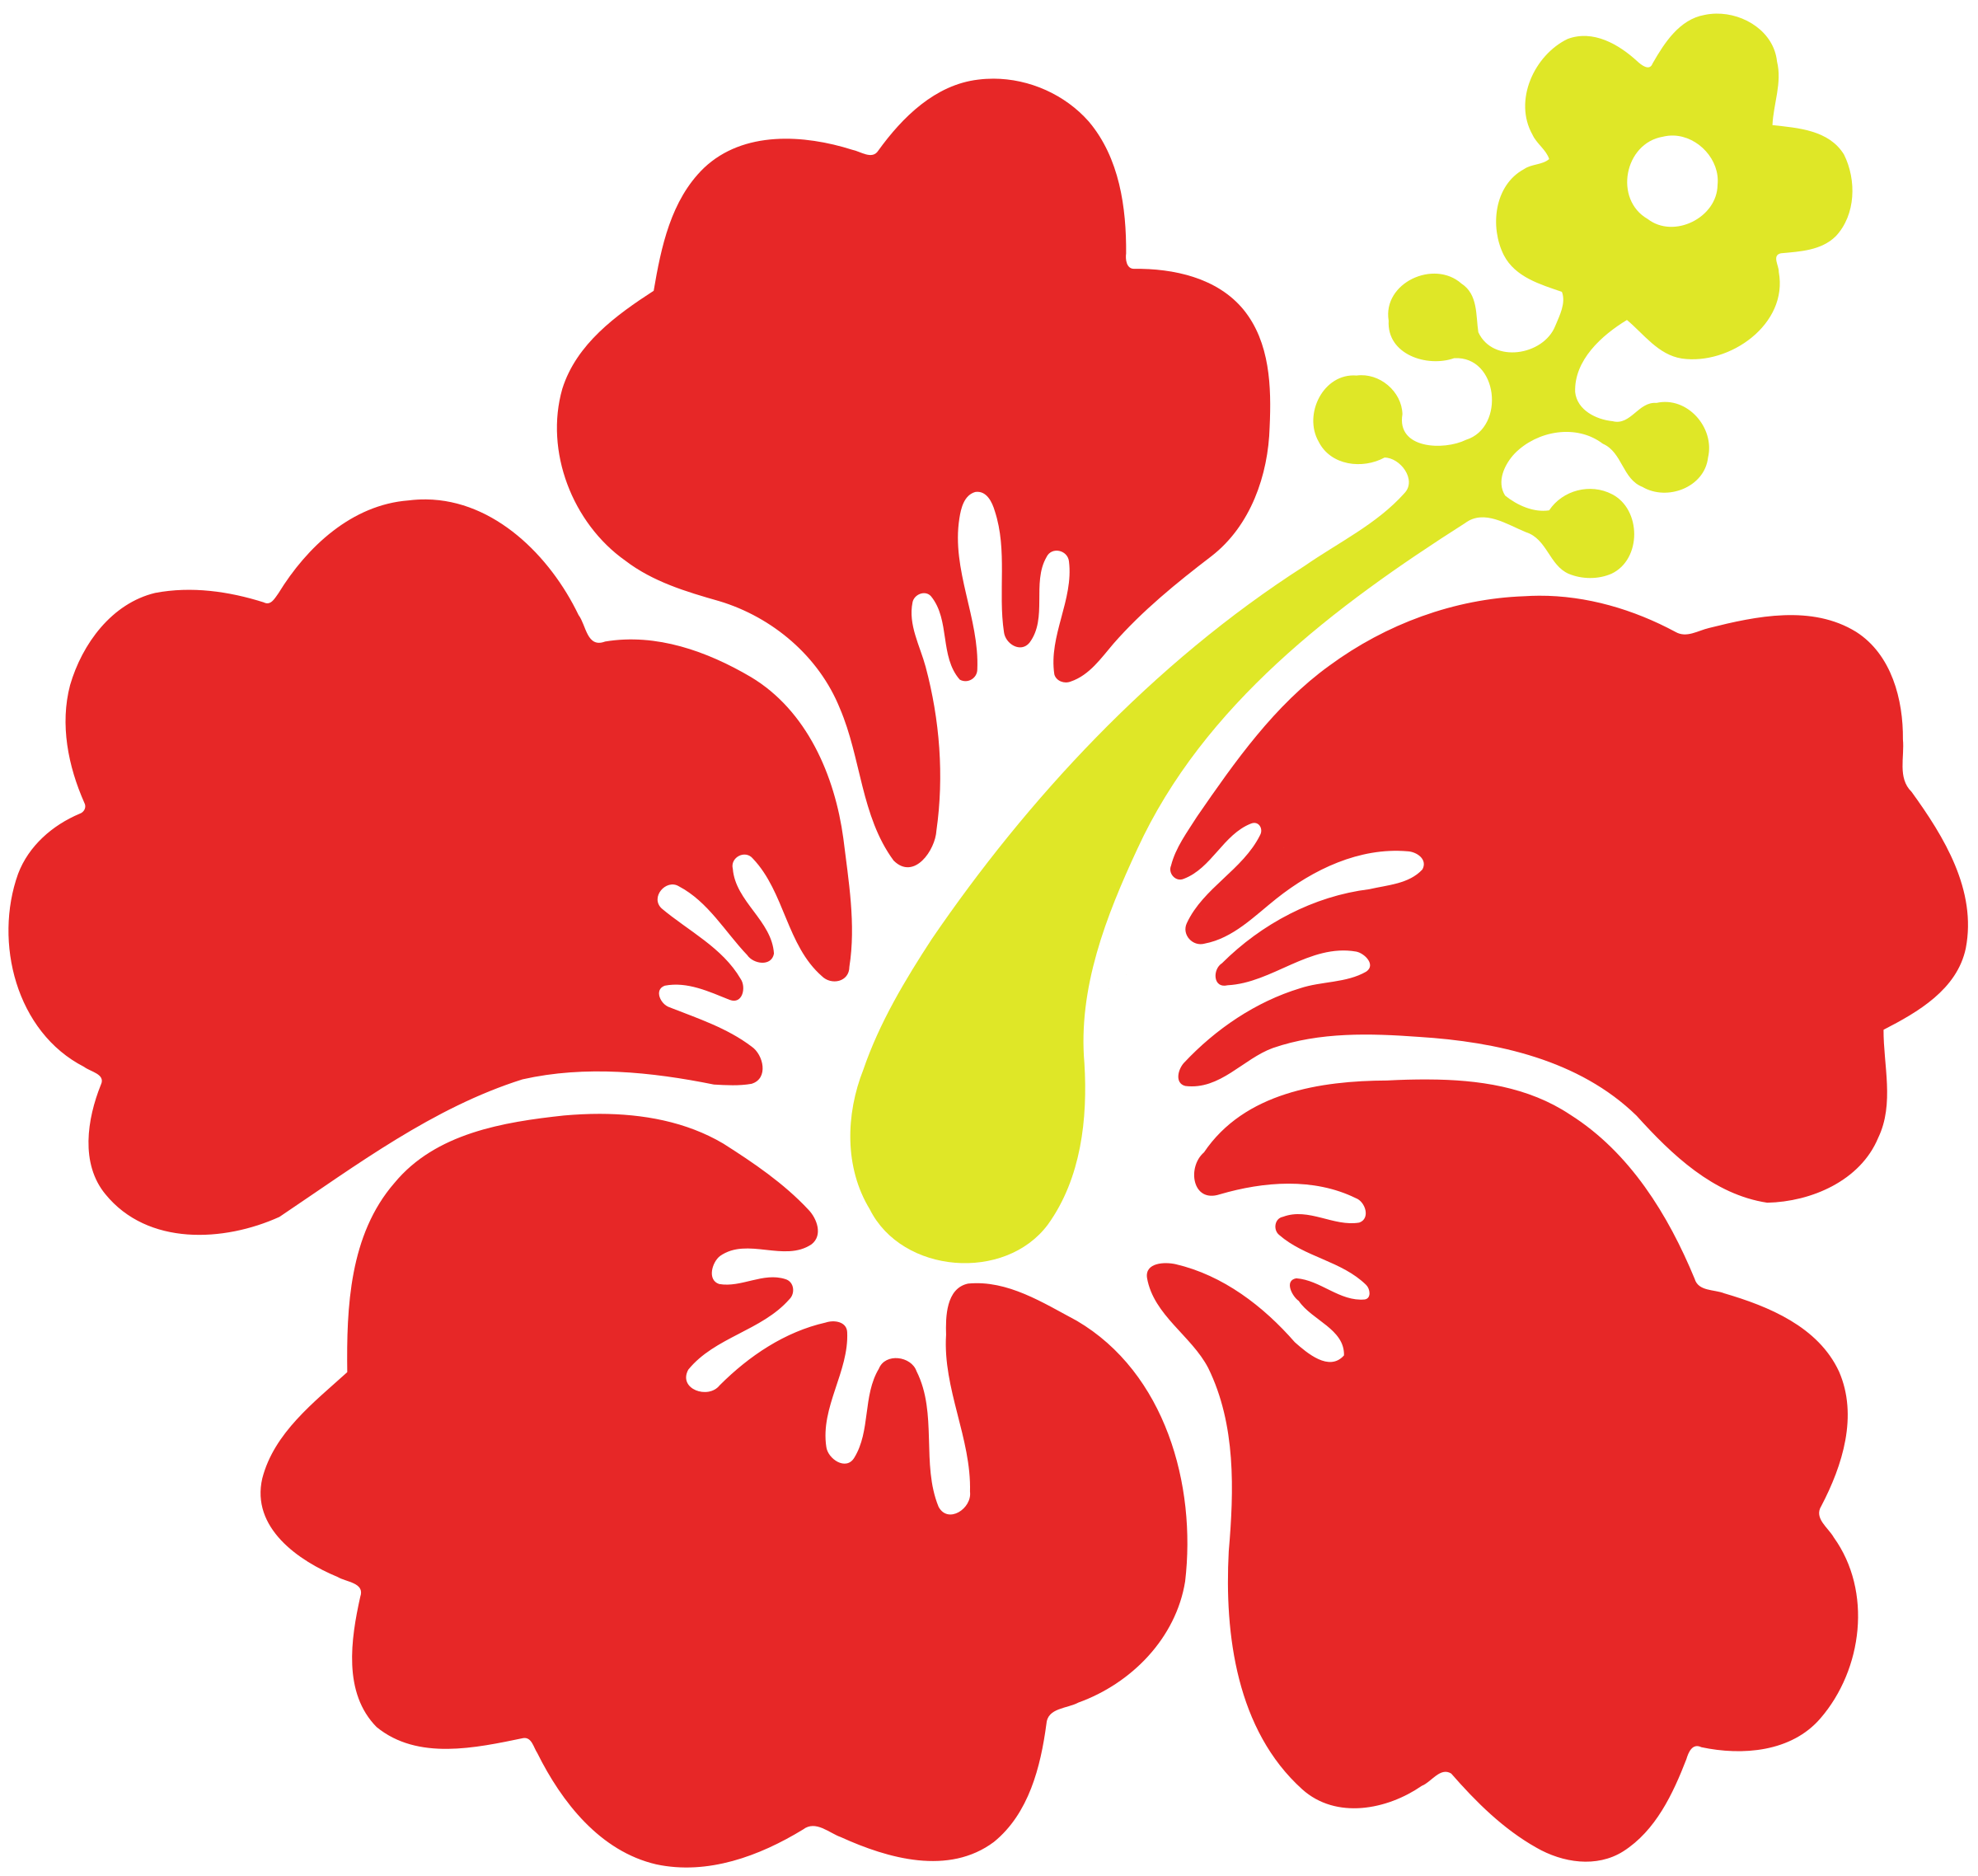 Flower clipart tropical. Big image png